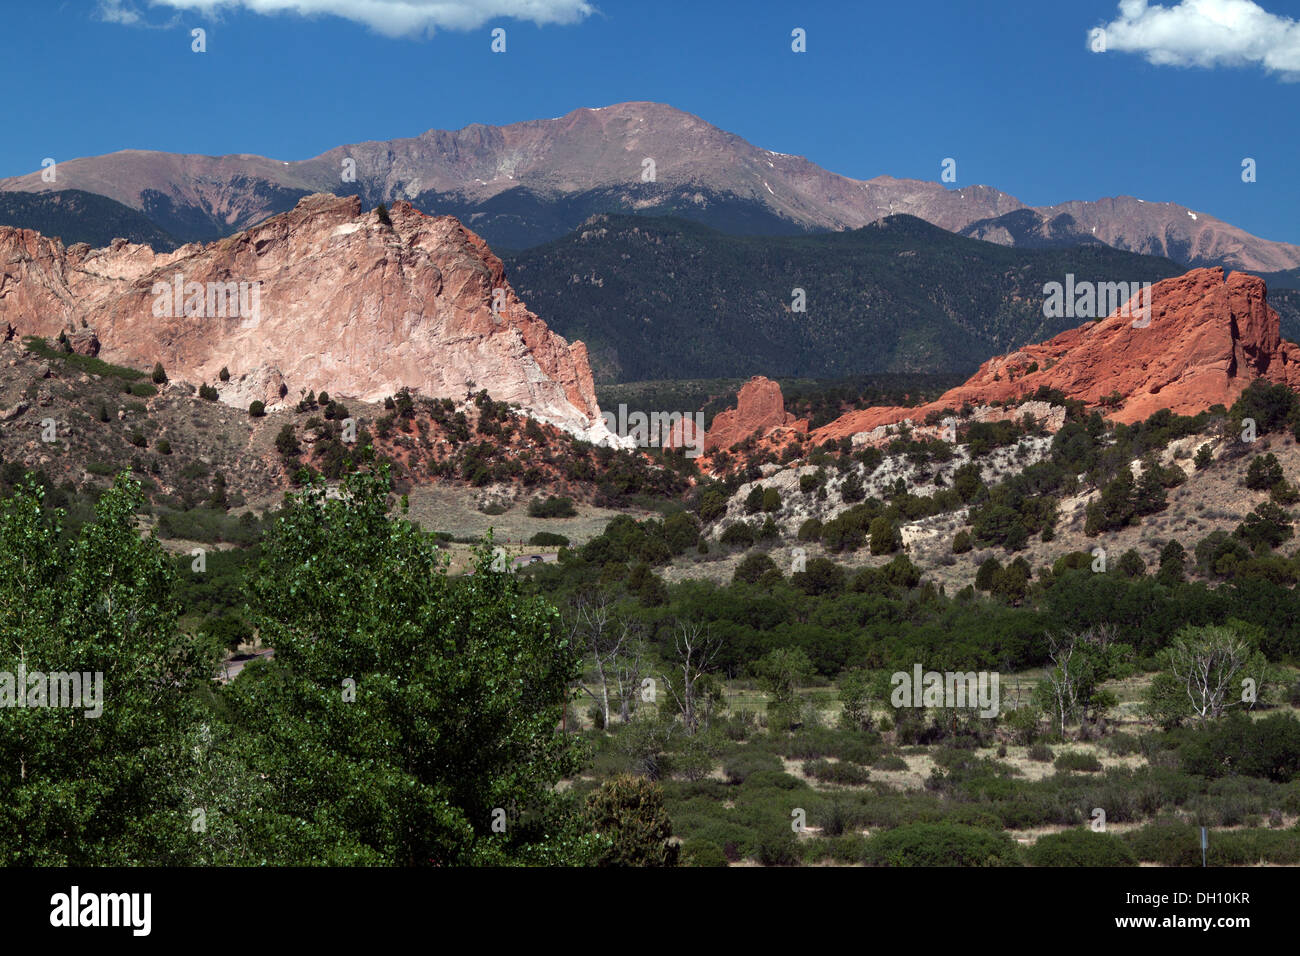 Garden of the Gods park with Pikes Peak in the background. Gray Rock to left and South Gateway Rock to right. - Stock Image